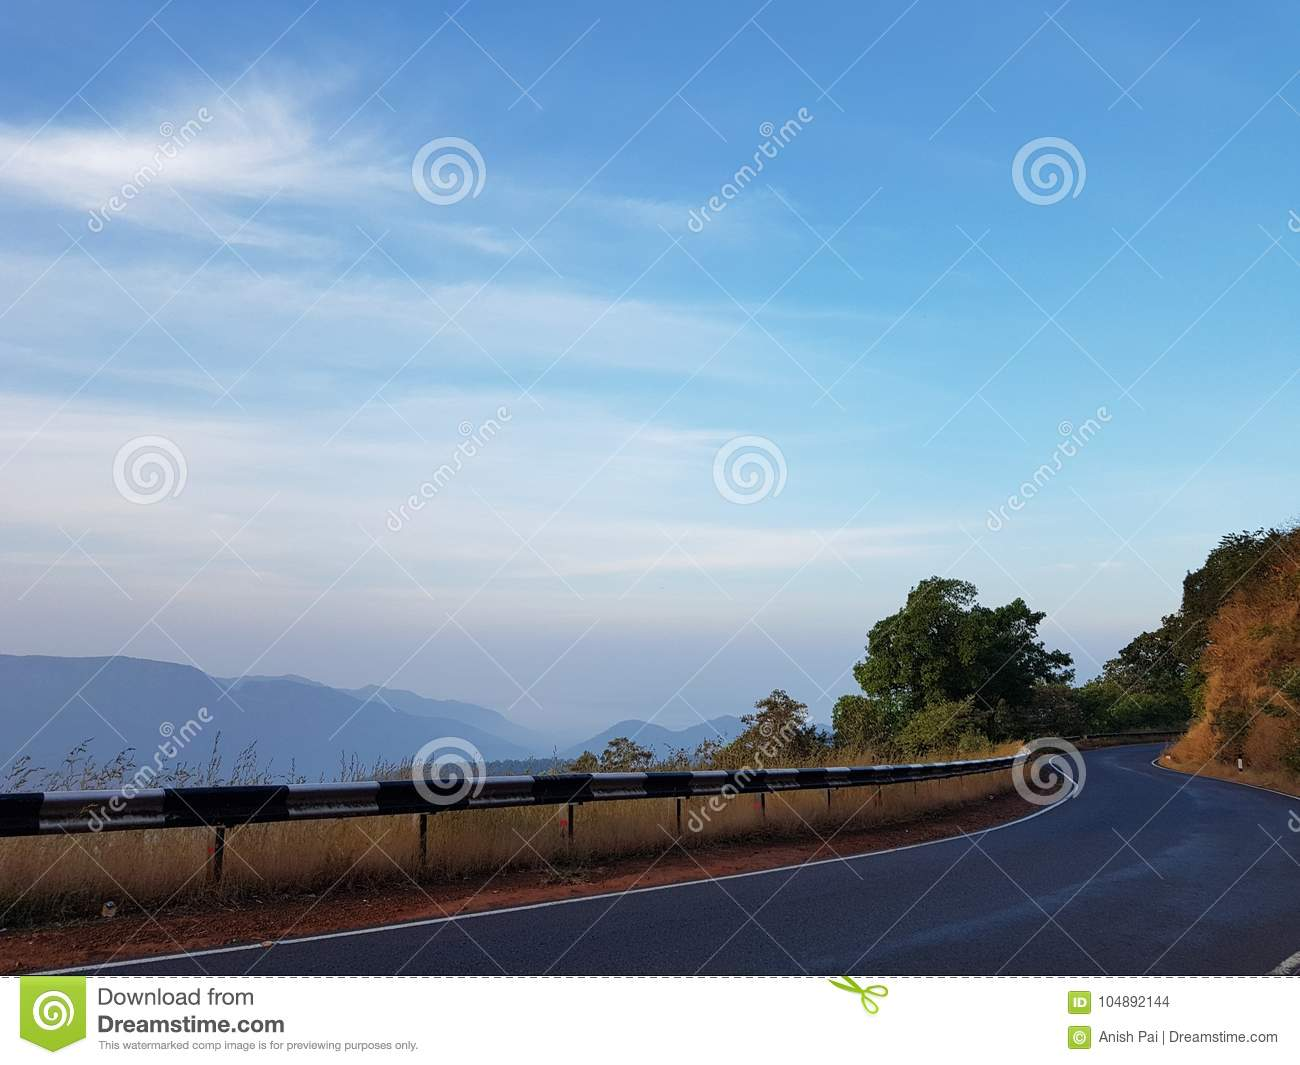 twisties stock photo image of beautiful landscape 104892144 dreamstime com